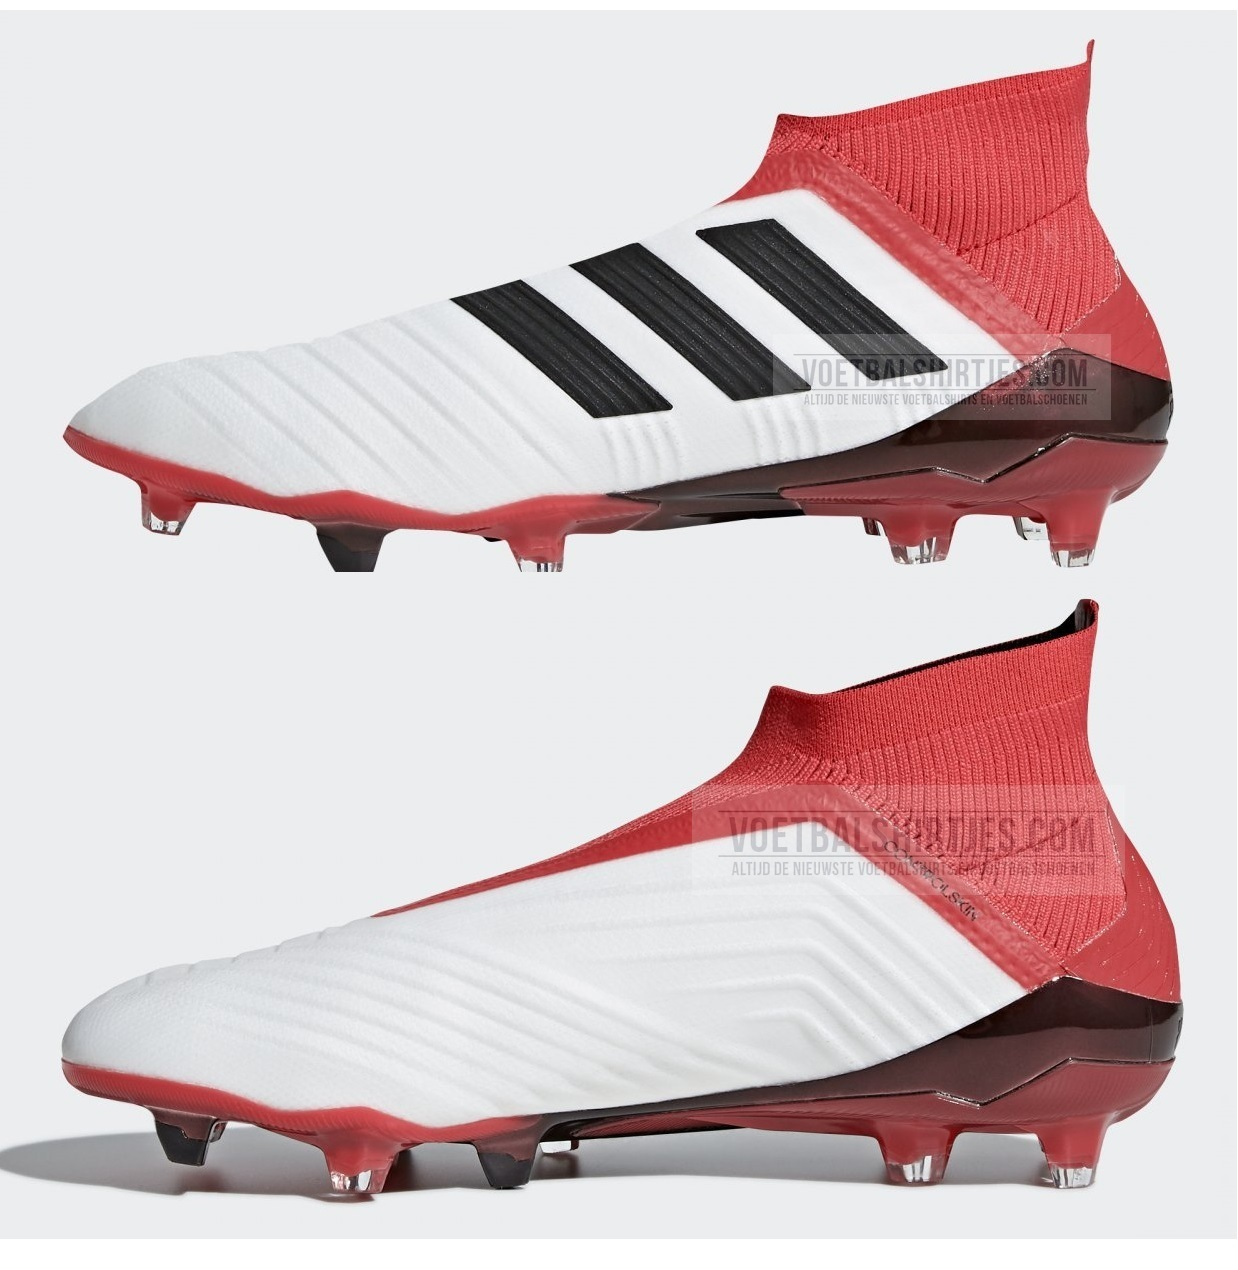 adidas predator 18+ white red